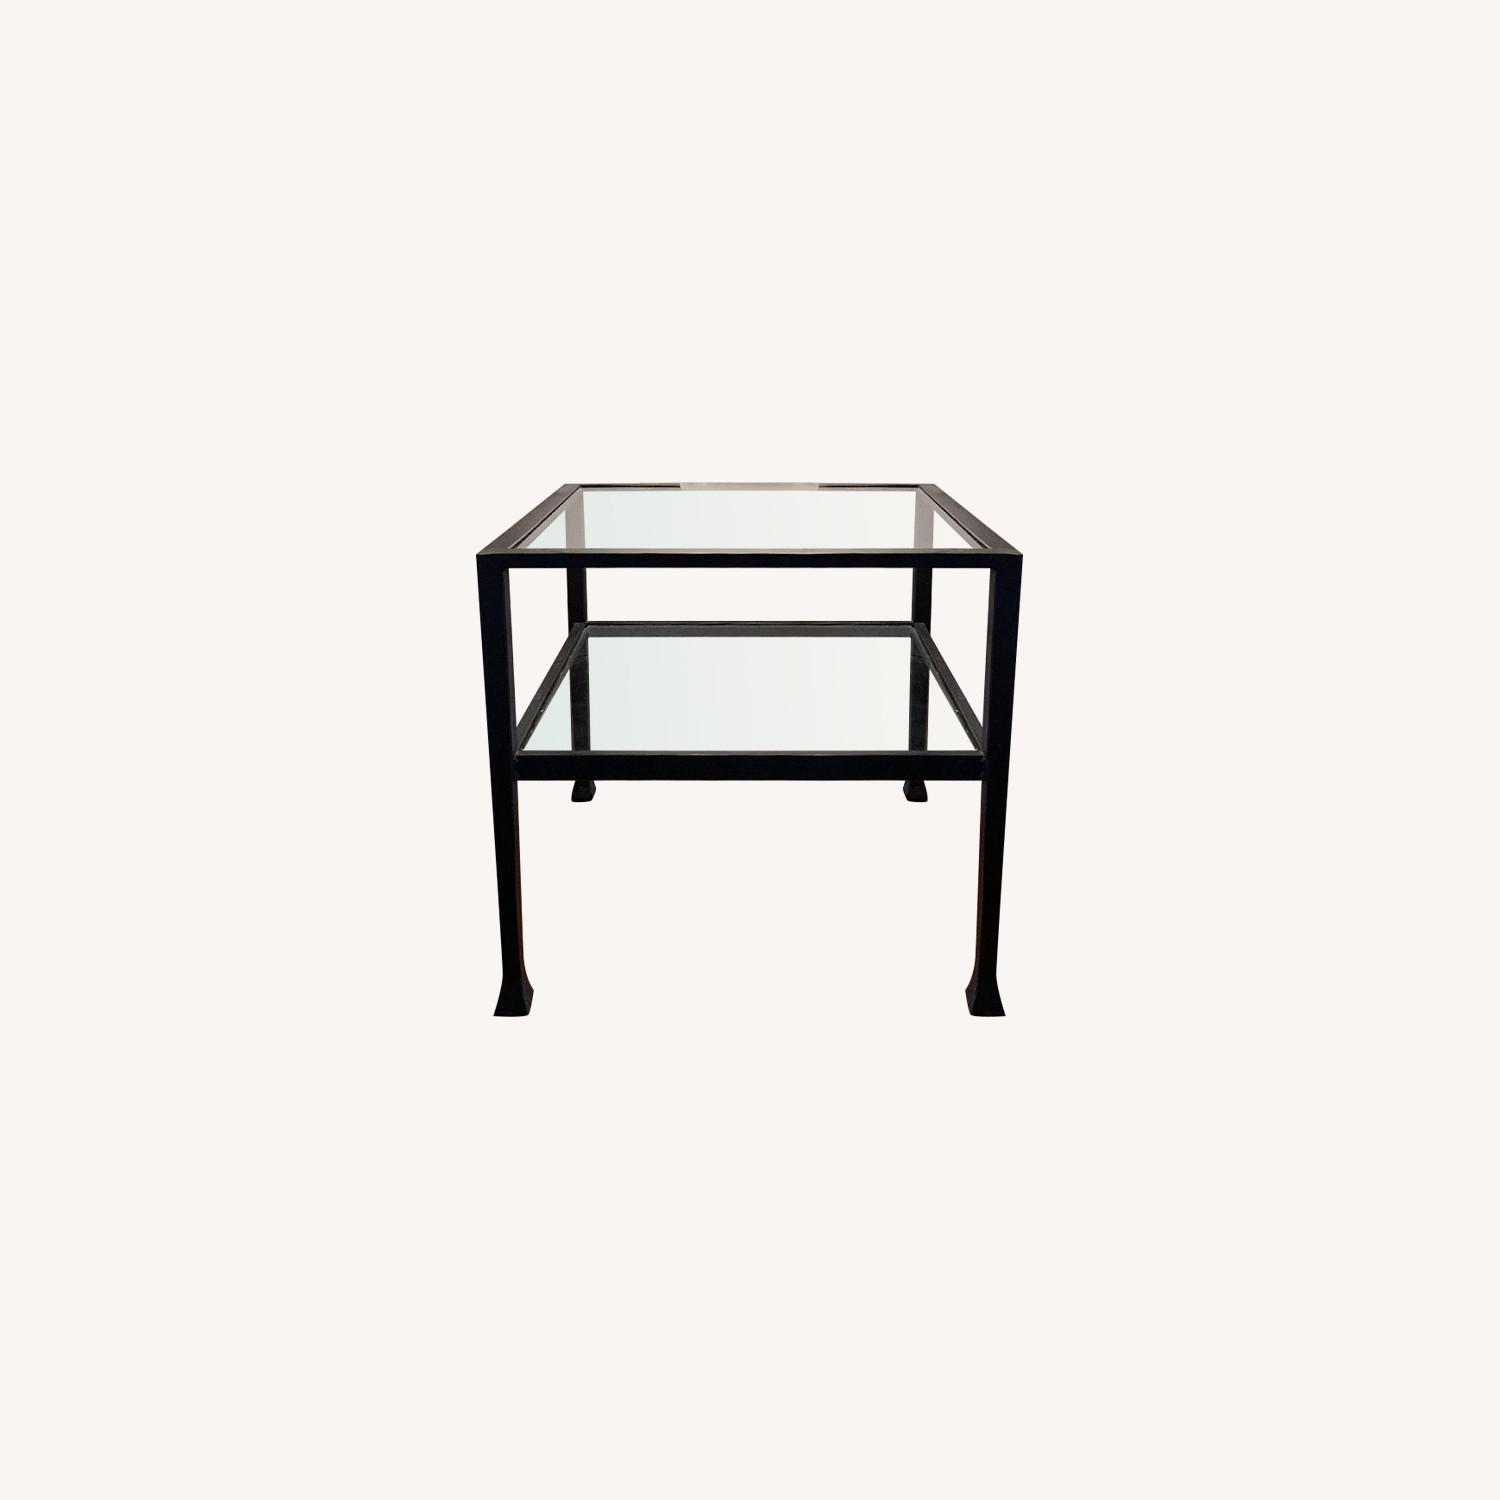 Iron Framed Pottery Barn Side Tables with Glass Top & Shelf - image-0